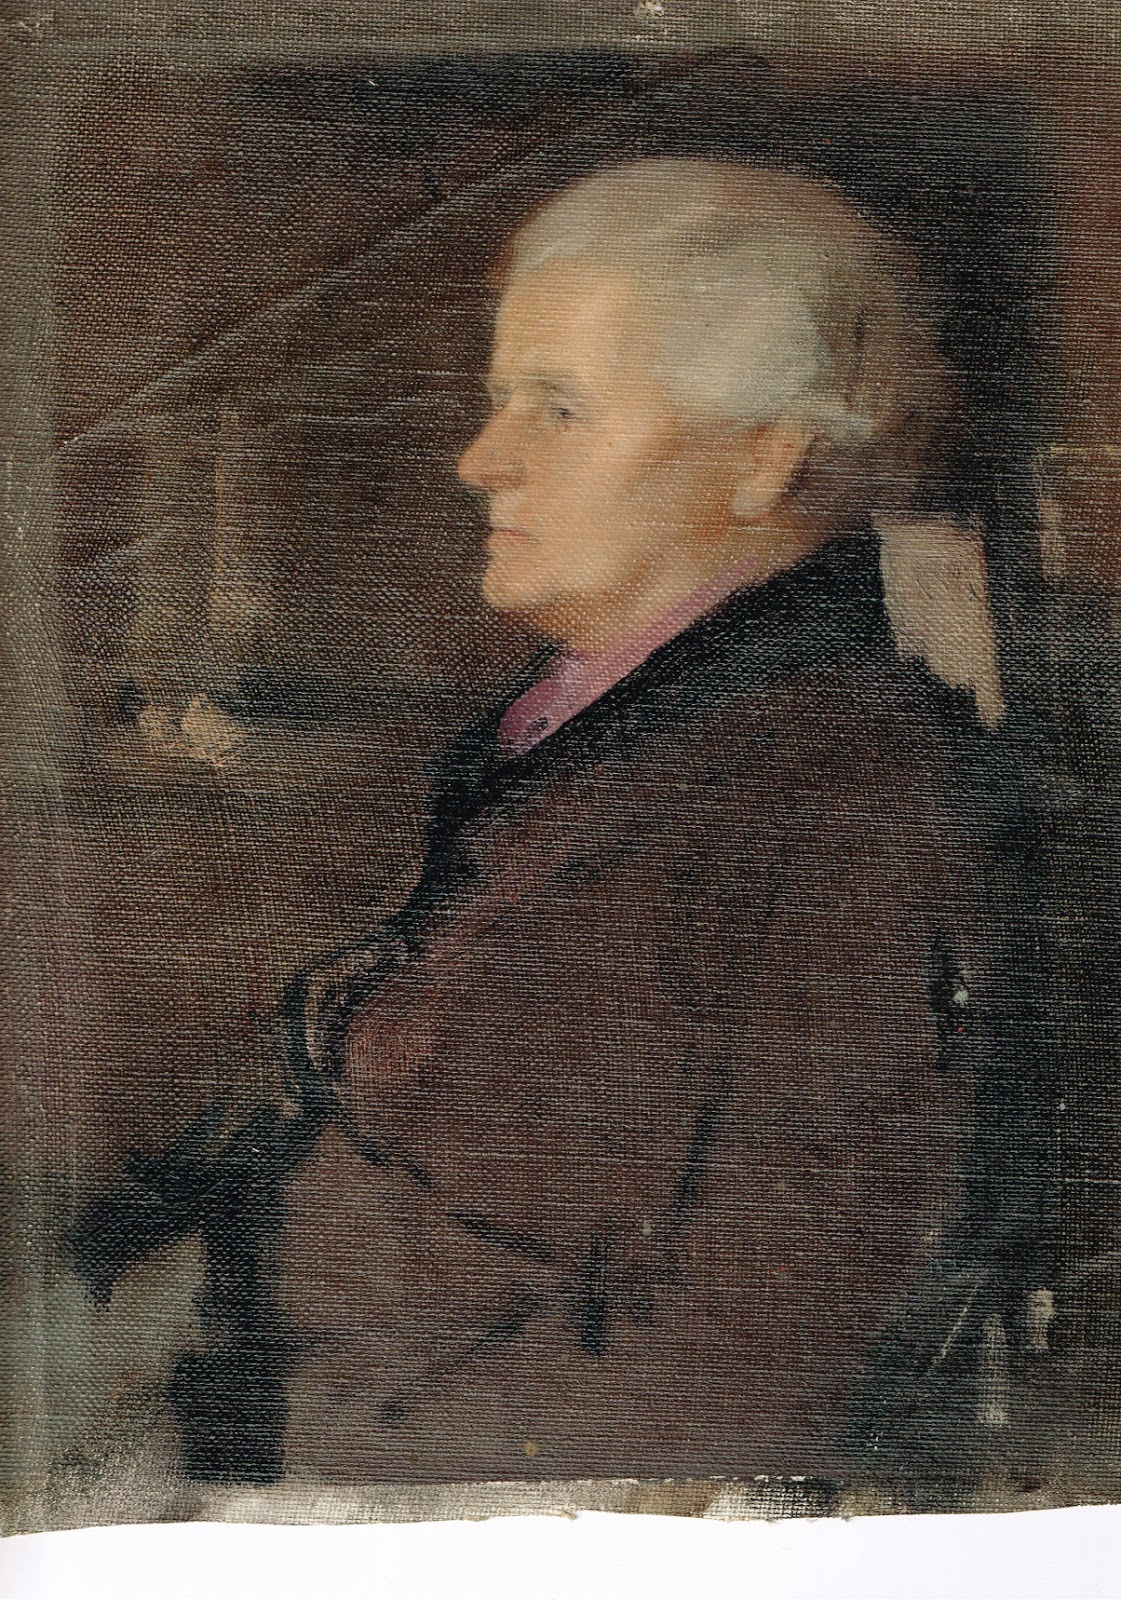 An oil painting by Roger Nicholson of my grandmother Ann